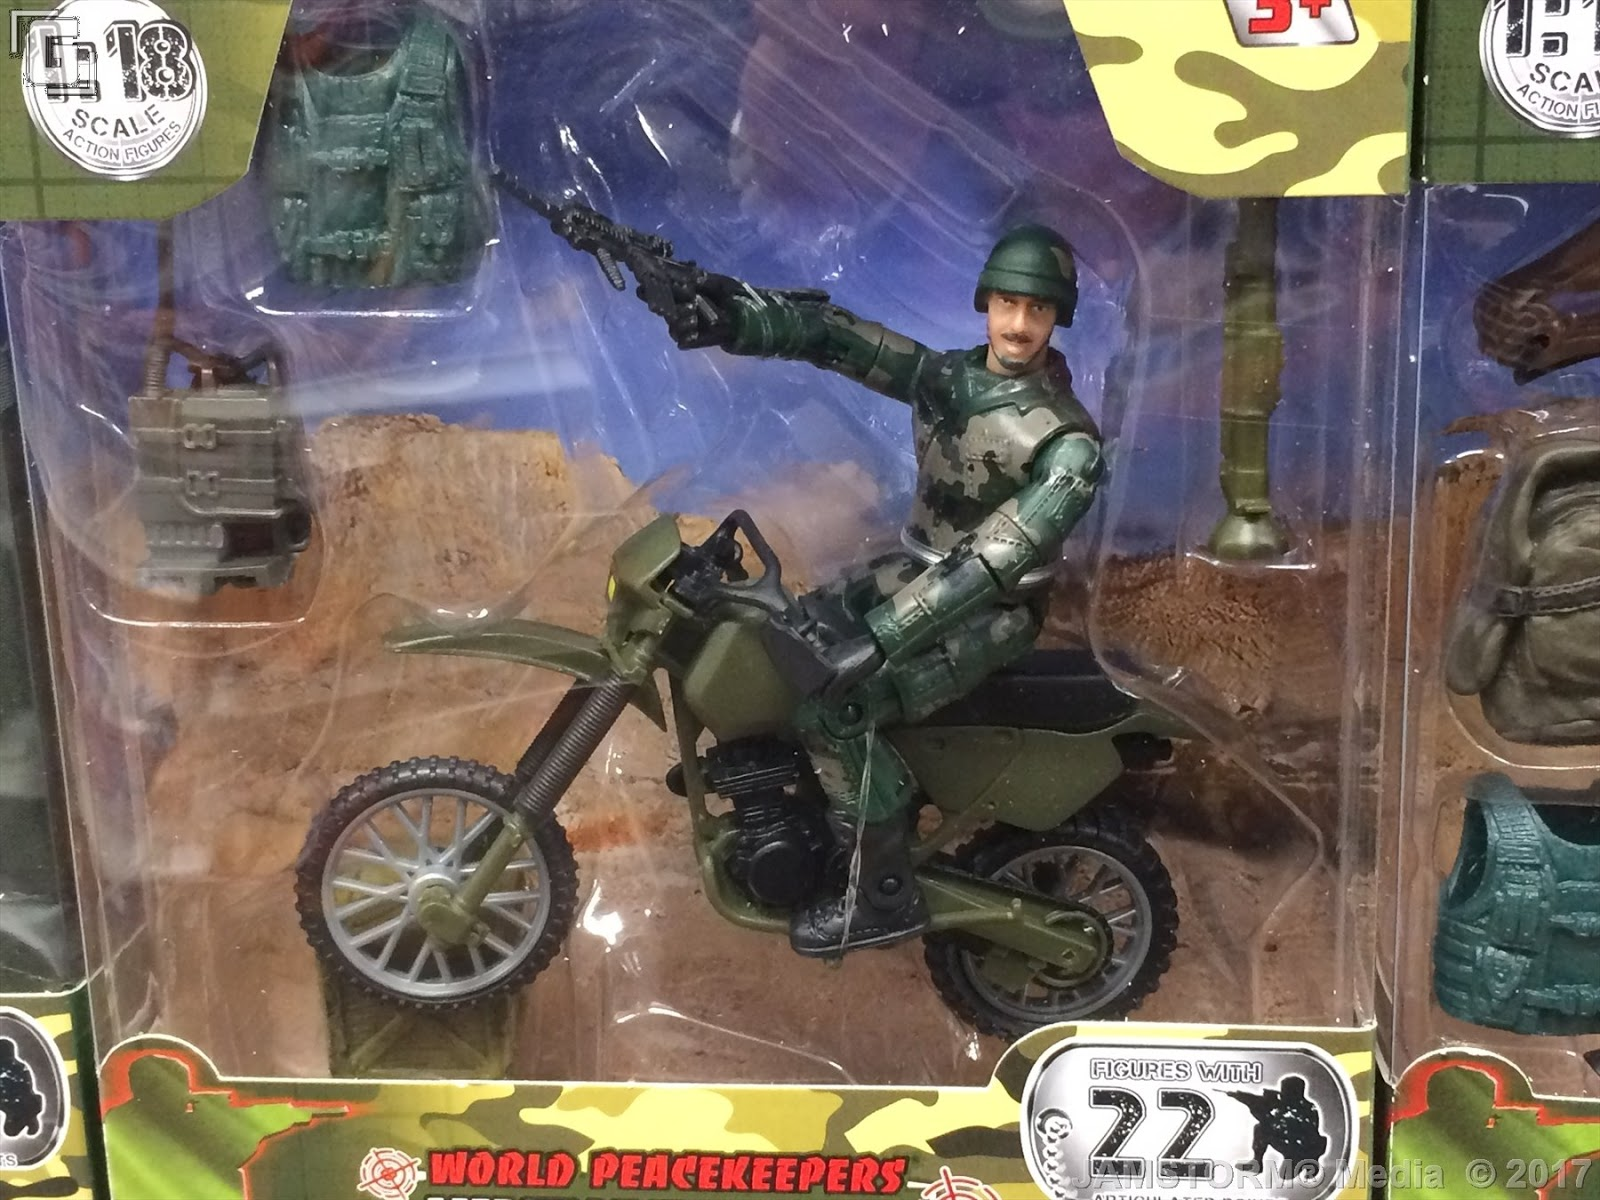 World Peacekeepers Single Military Army Toy Figure Assorted 1:18 Scale